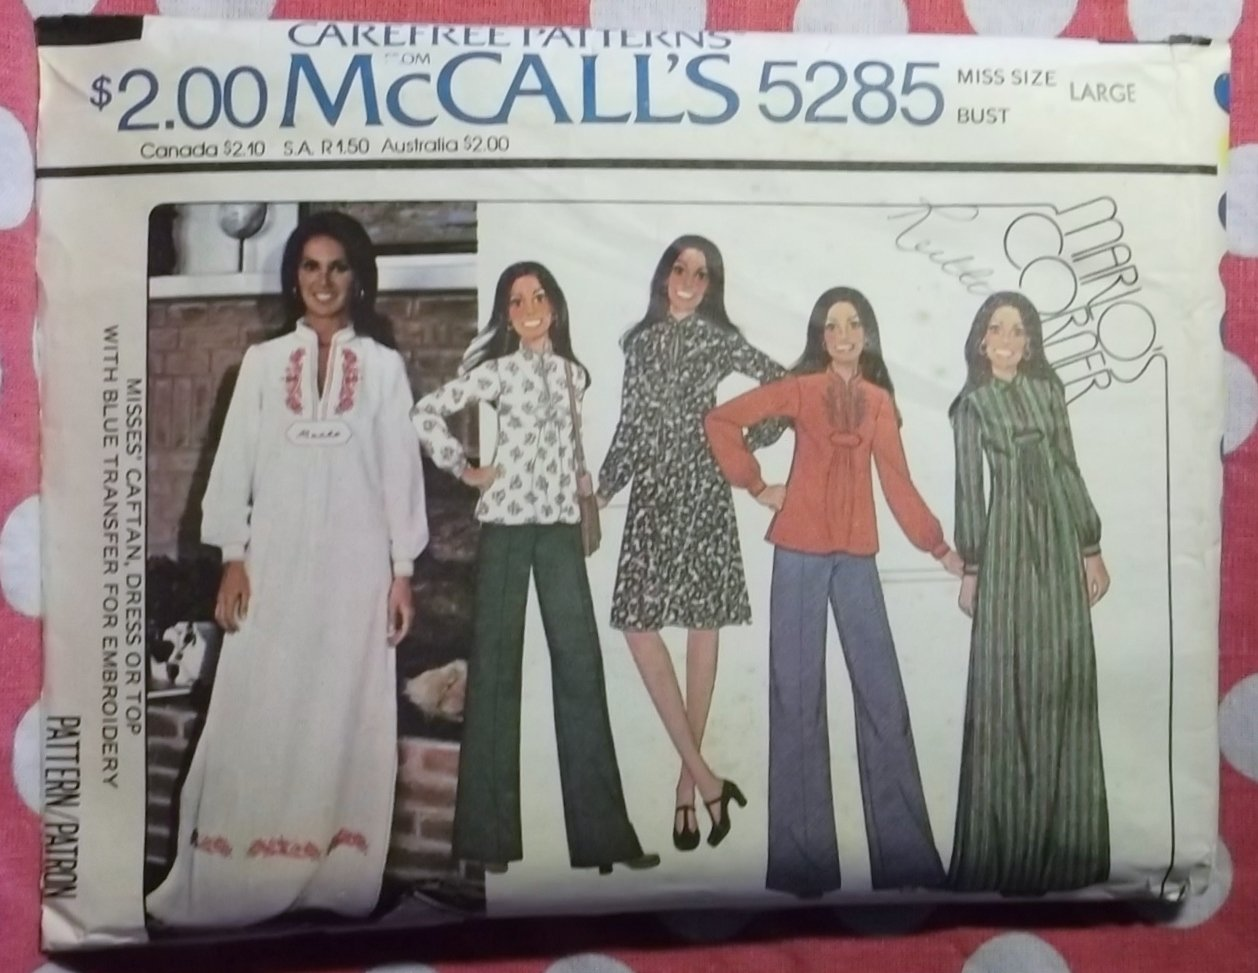 Vintage 1970's McCalls 5285 Caftan, Dress or Blouse Pattern, Sz Large, Uncut